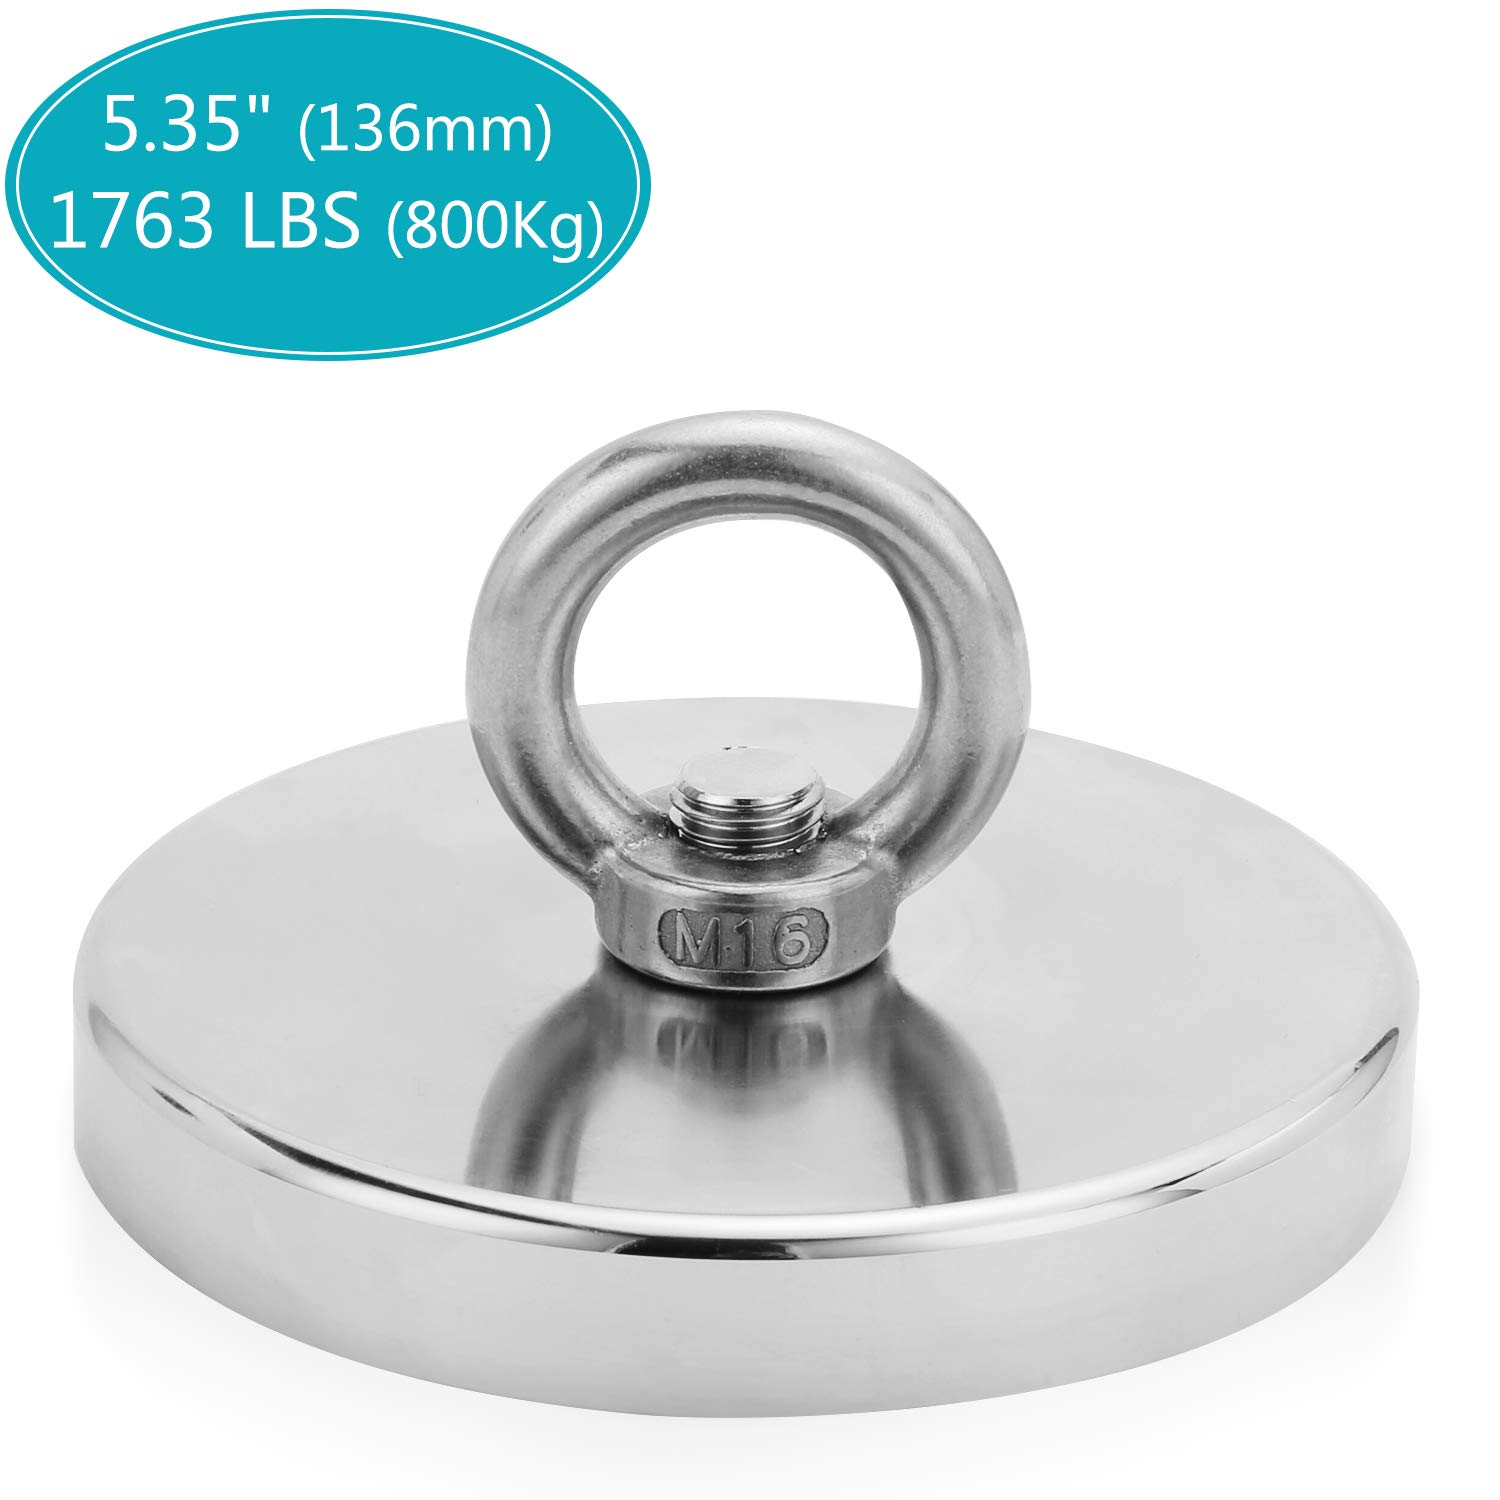 1763LBS Pulling Force(800KG) Powerful Round Neodymium Magnet with Countersunk Hole and Eyebolt, 5.35'' Diameter, Great for Salvage or Magnetic Fishing-The Largest Magnet On Amazon (136MM)